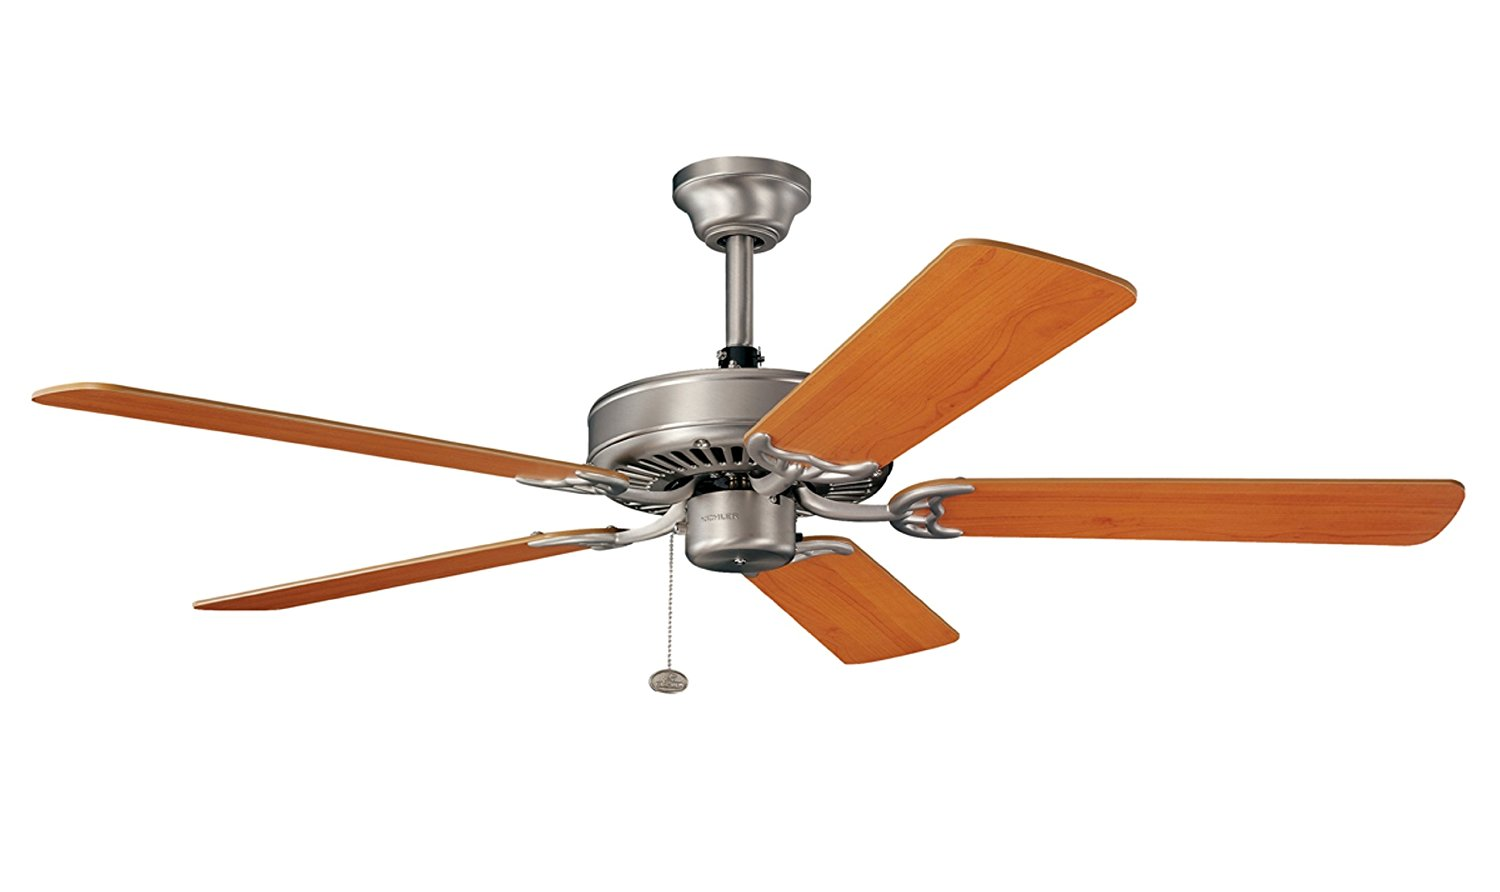 Kichler Lighting 339010NI Sterling Manor 52IN Energy Star Ceiling Fan, Brushed Nickel Finish with Reversible Marive Cherry/Maple Blades